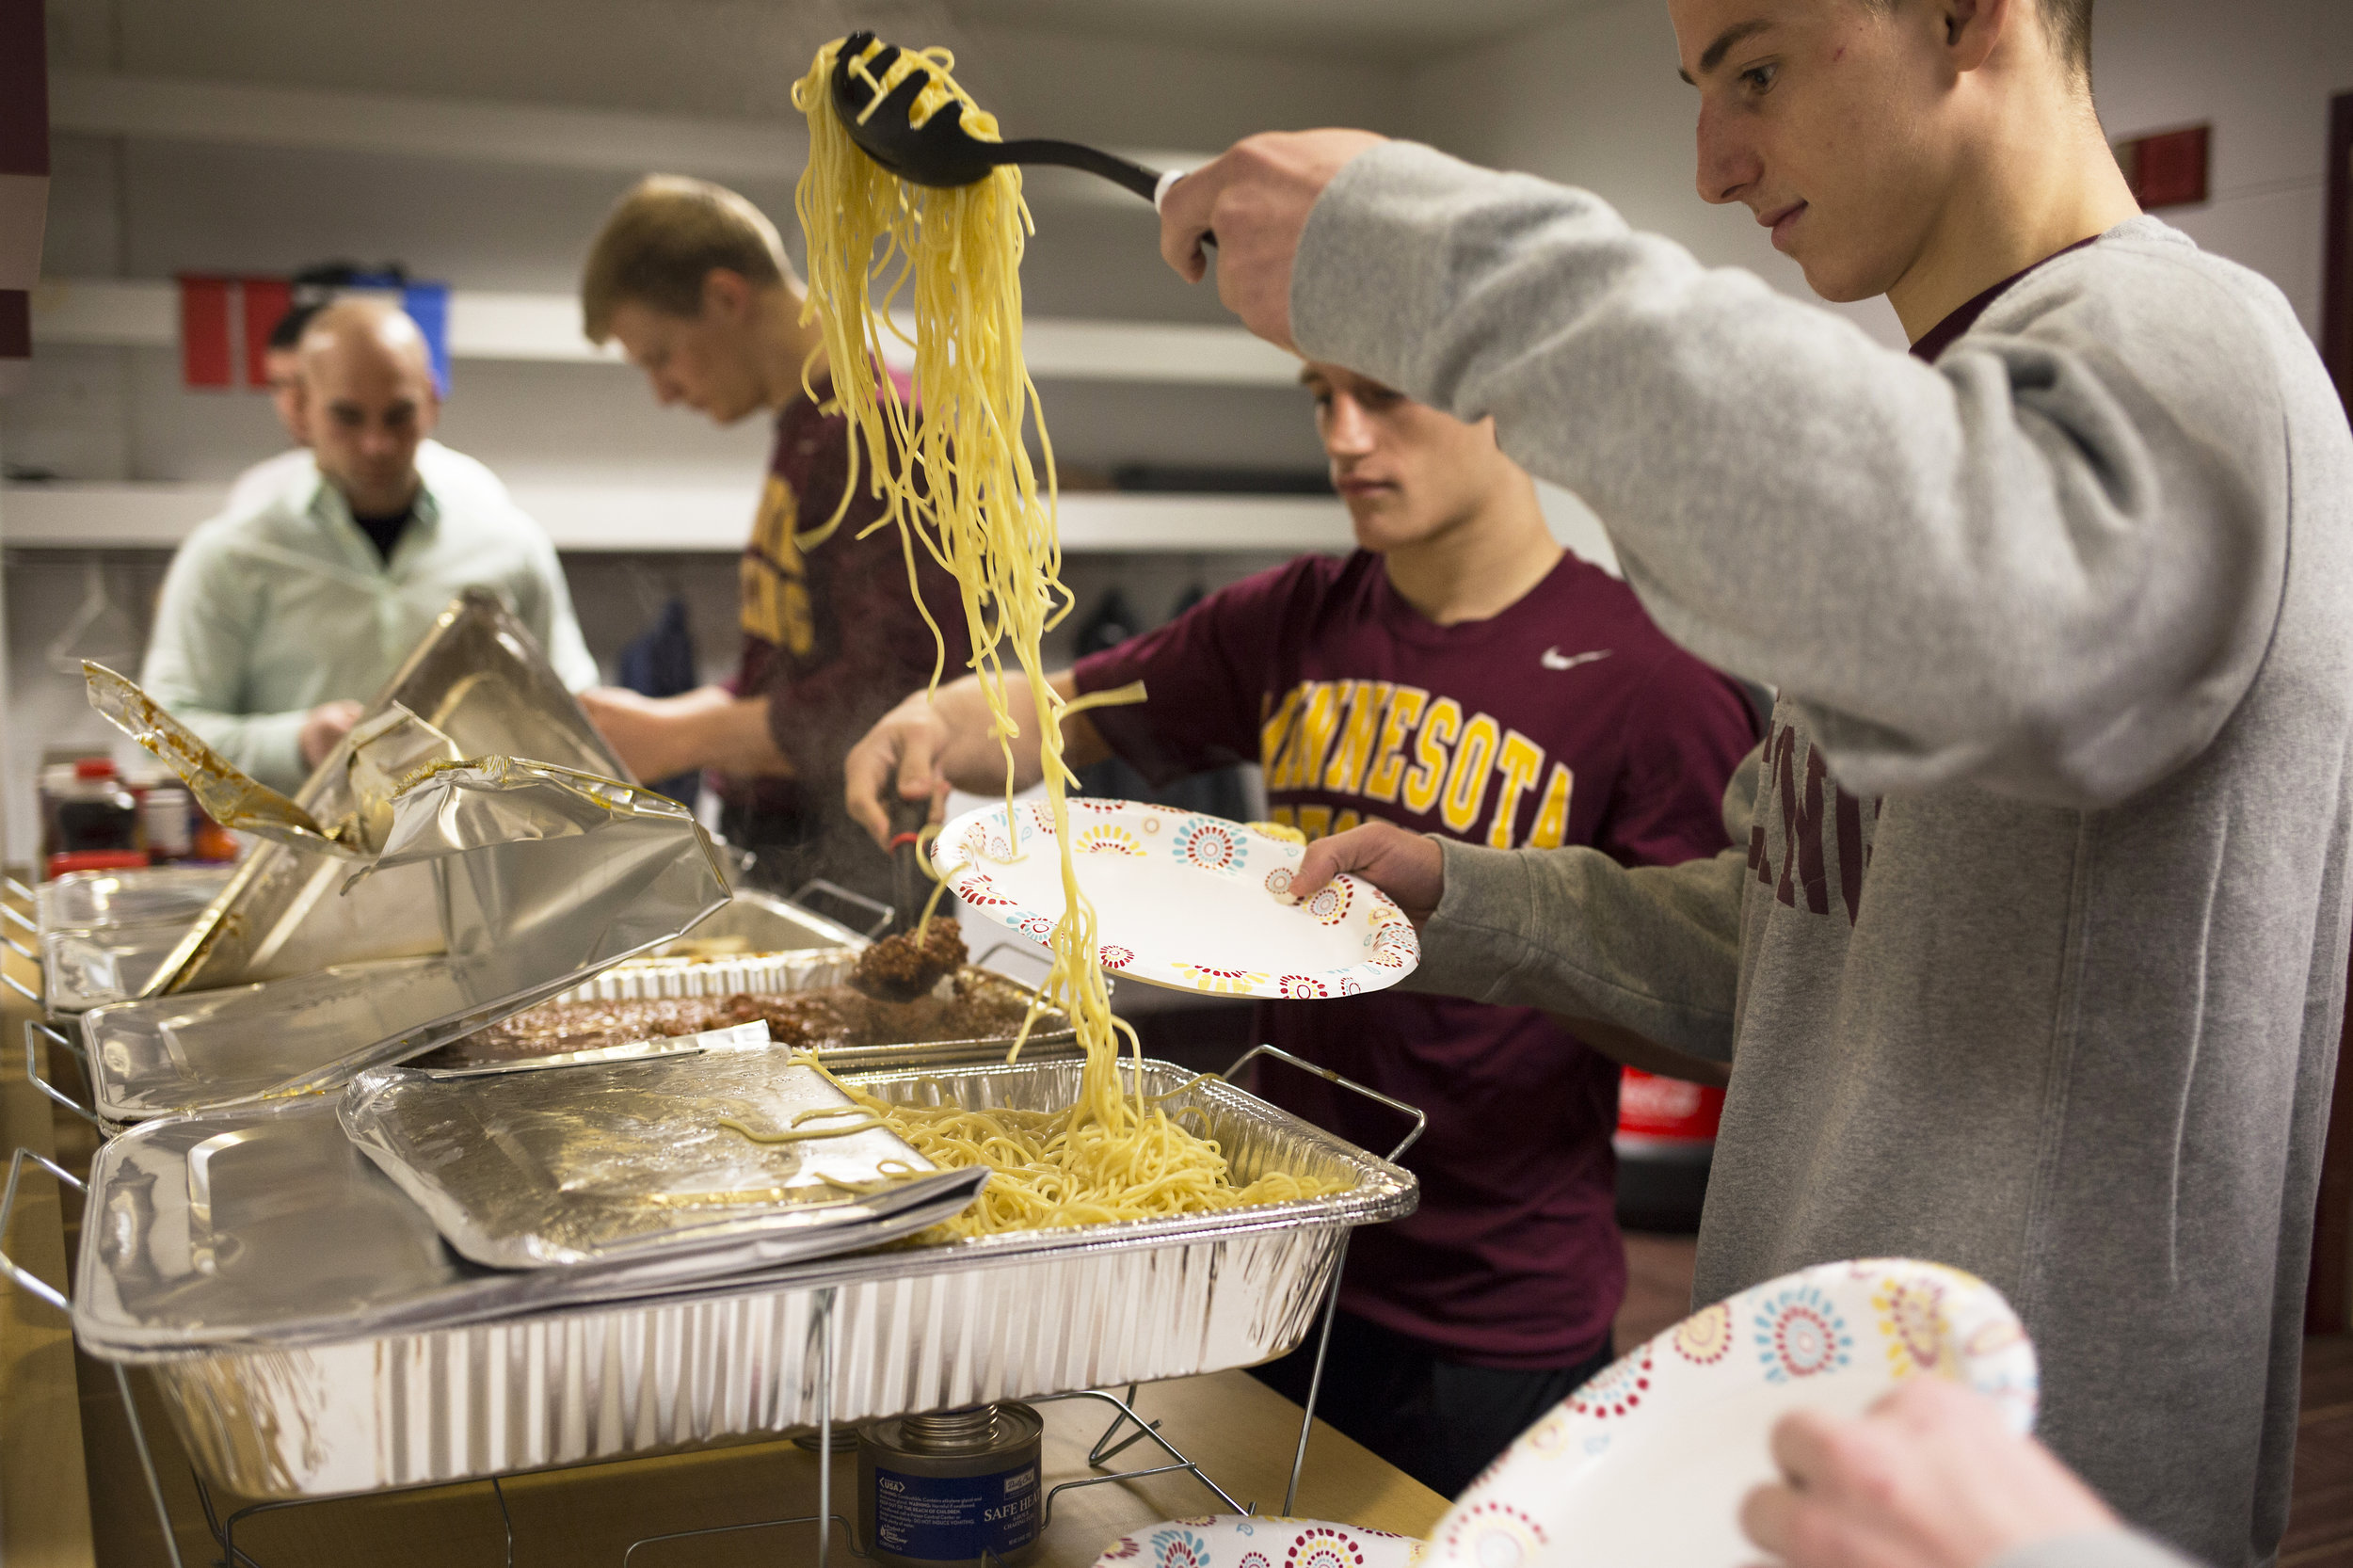 After their weigh-in, wrestlers fuel themselves with a hot meal for their dual meet, less than an hour away.